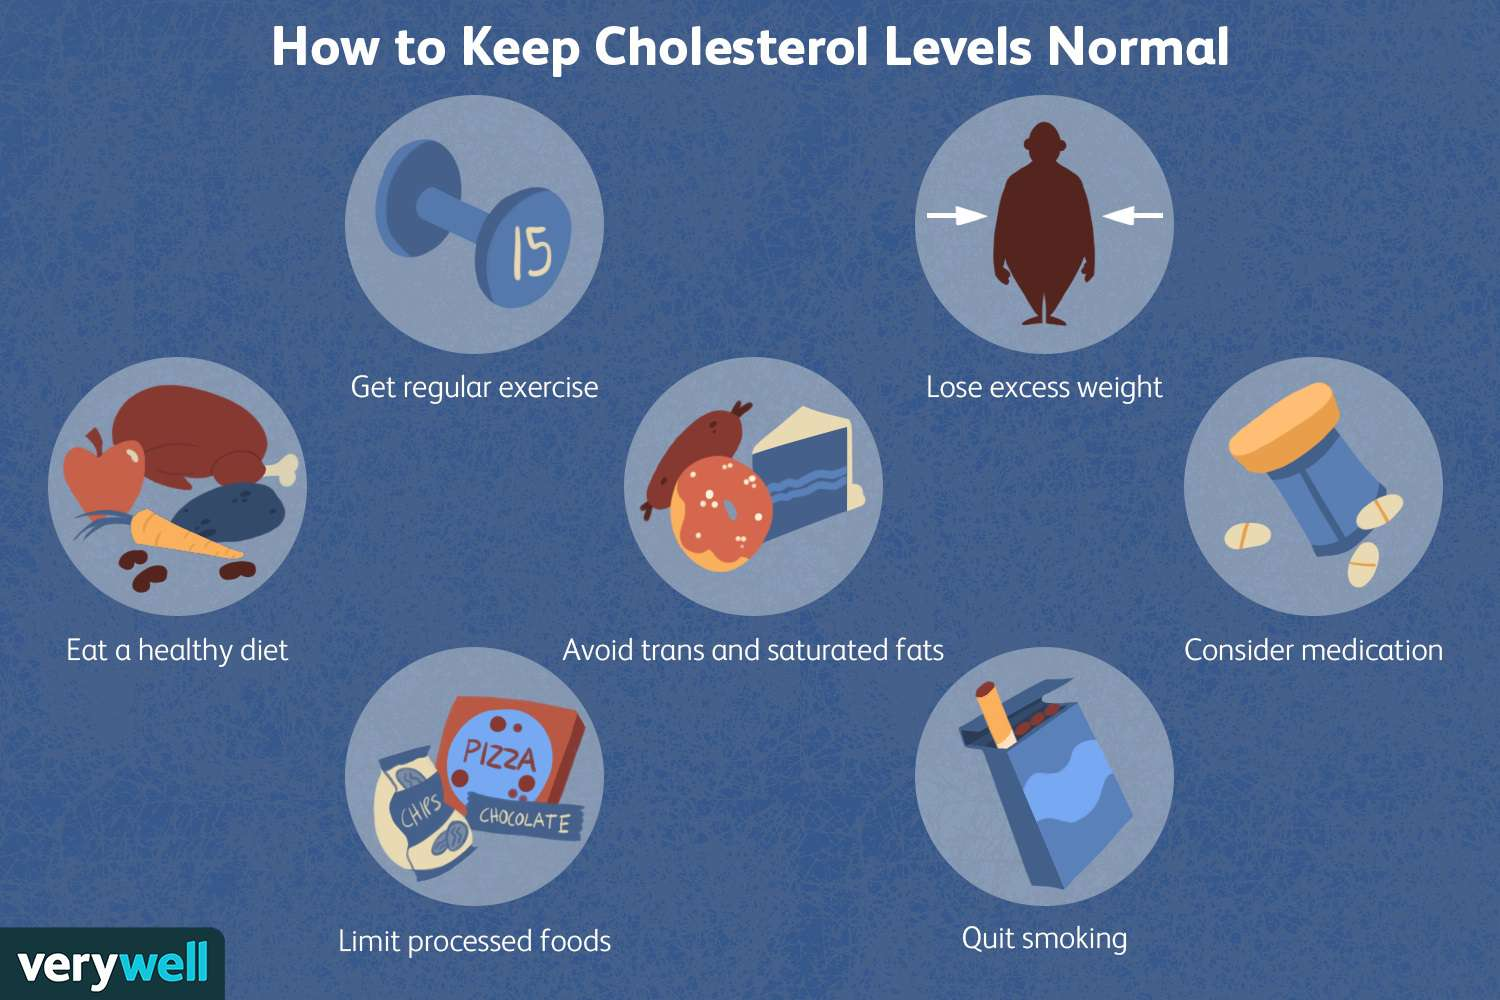 How to Keep Cholesterol Levels Normal